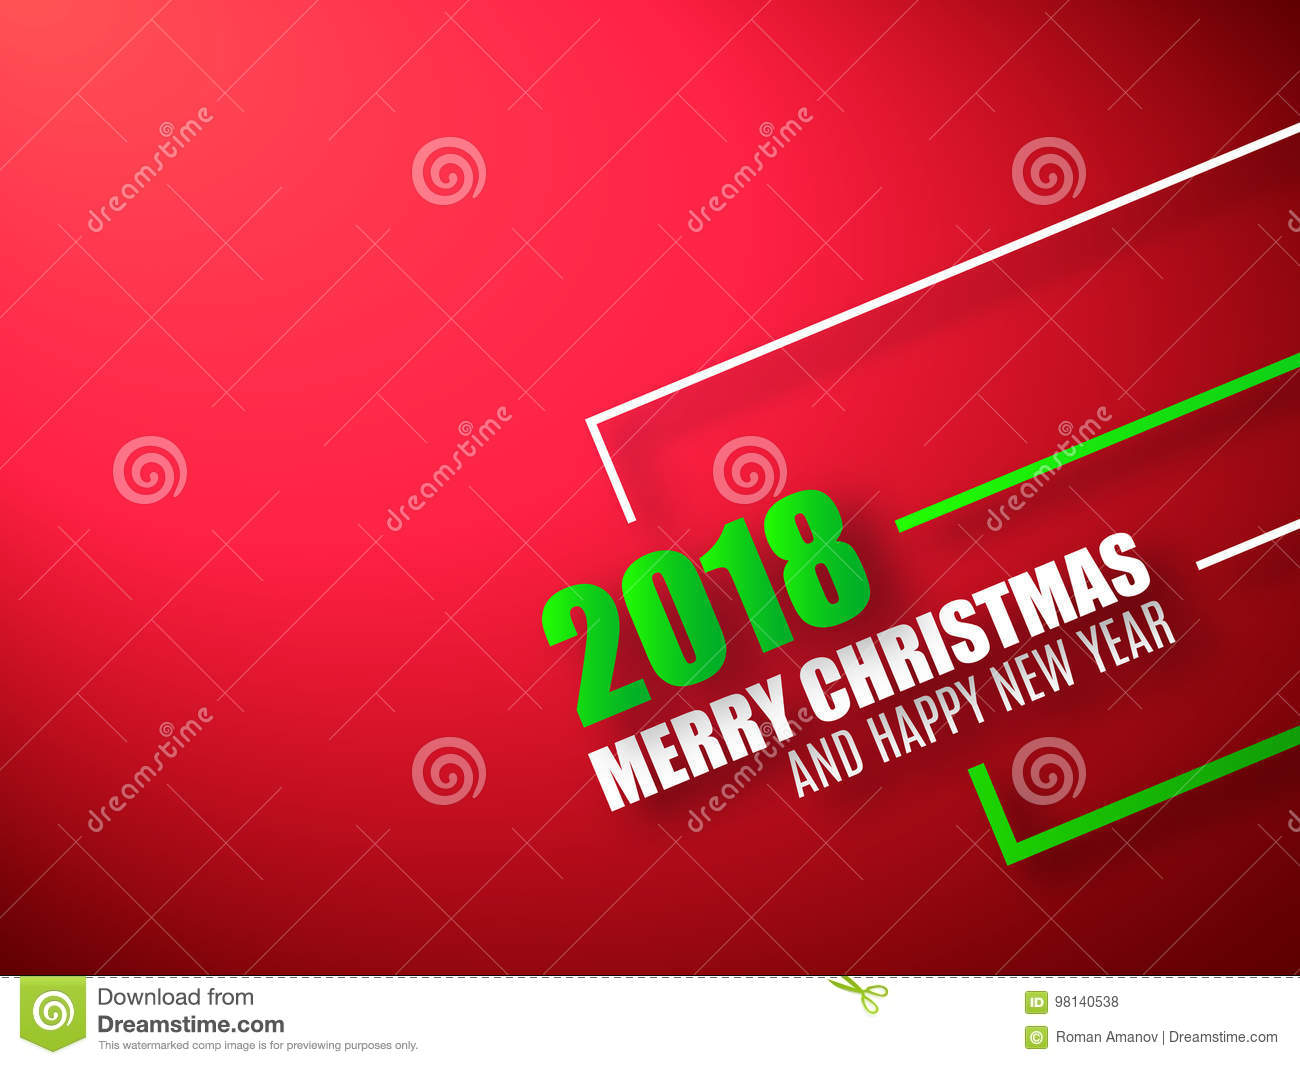 merry christmas and happy new year red background 2018 background